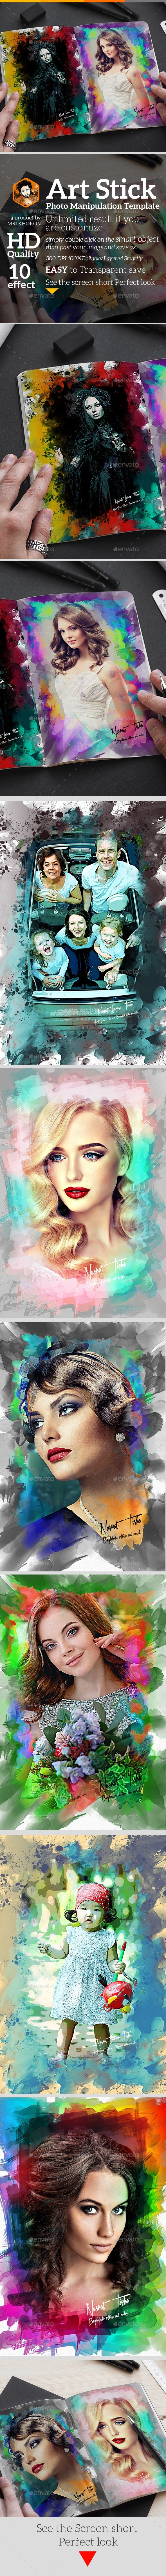 GraphicRiver Artistic Photo Manipulation Template 20616370